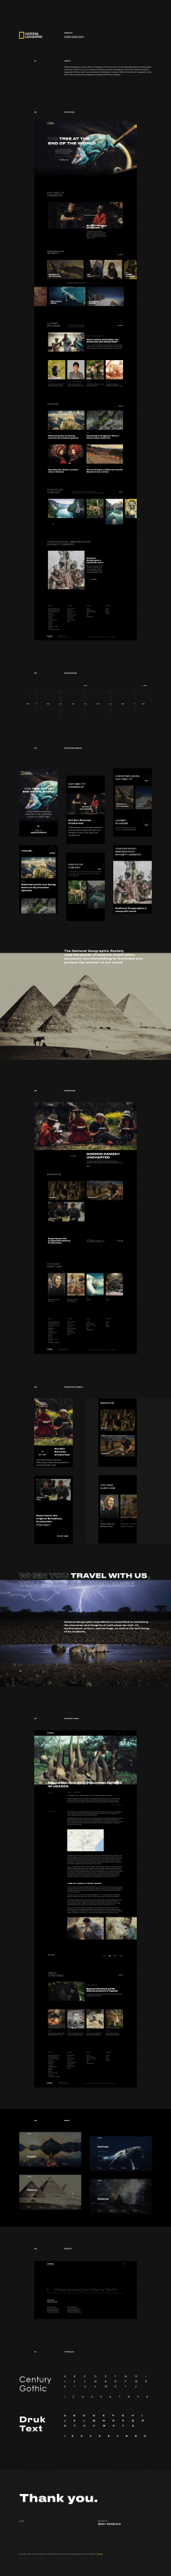 National Geographic - redesign website